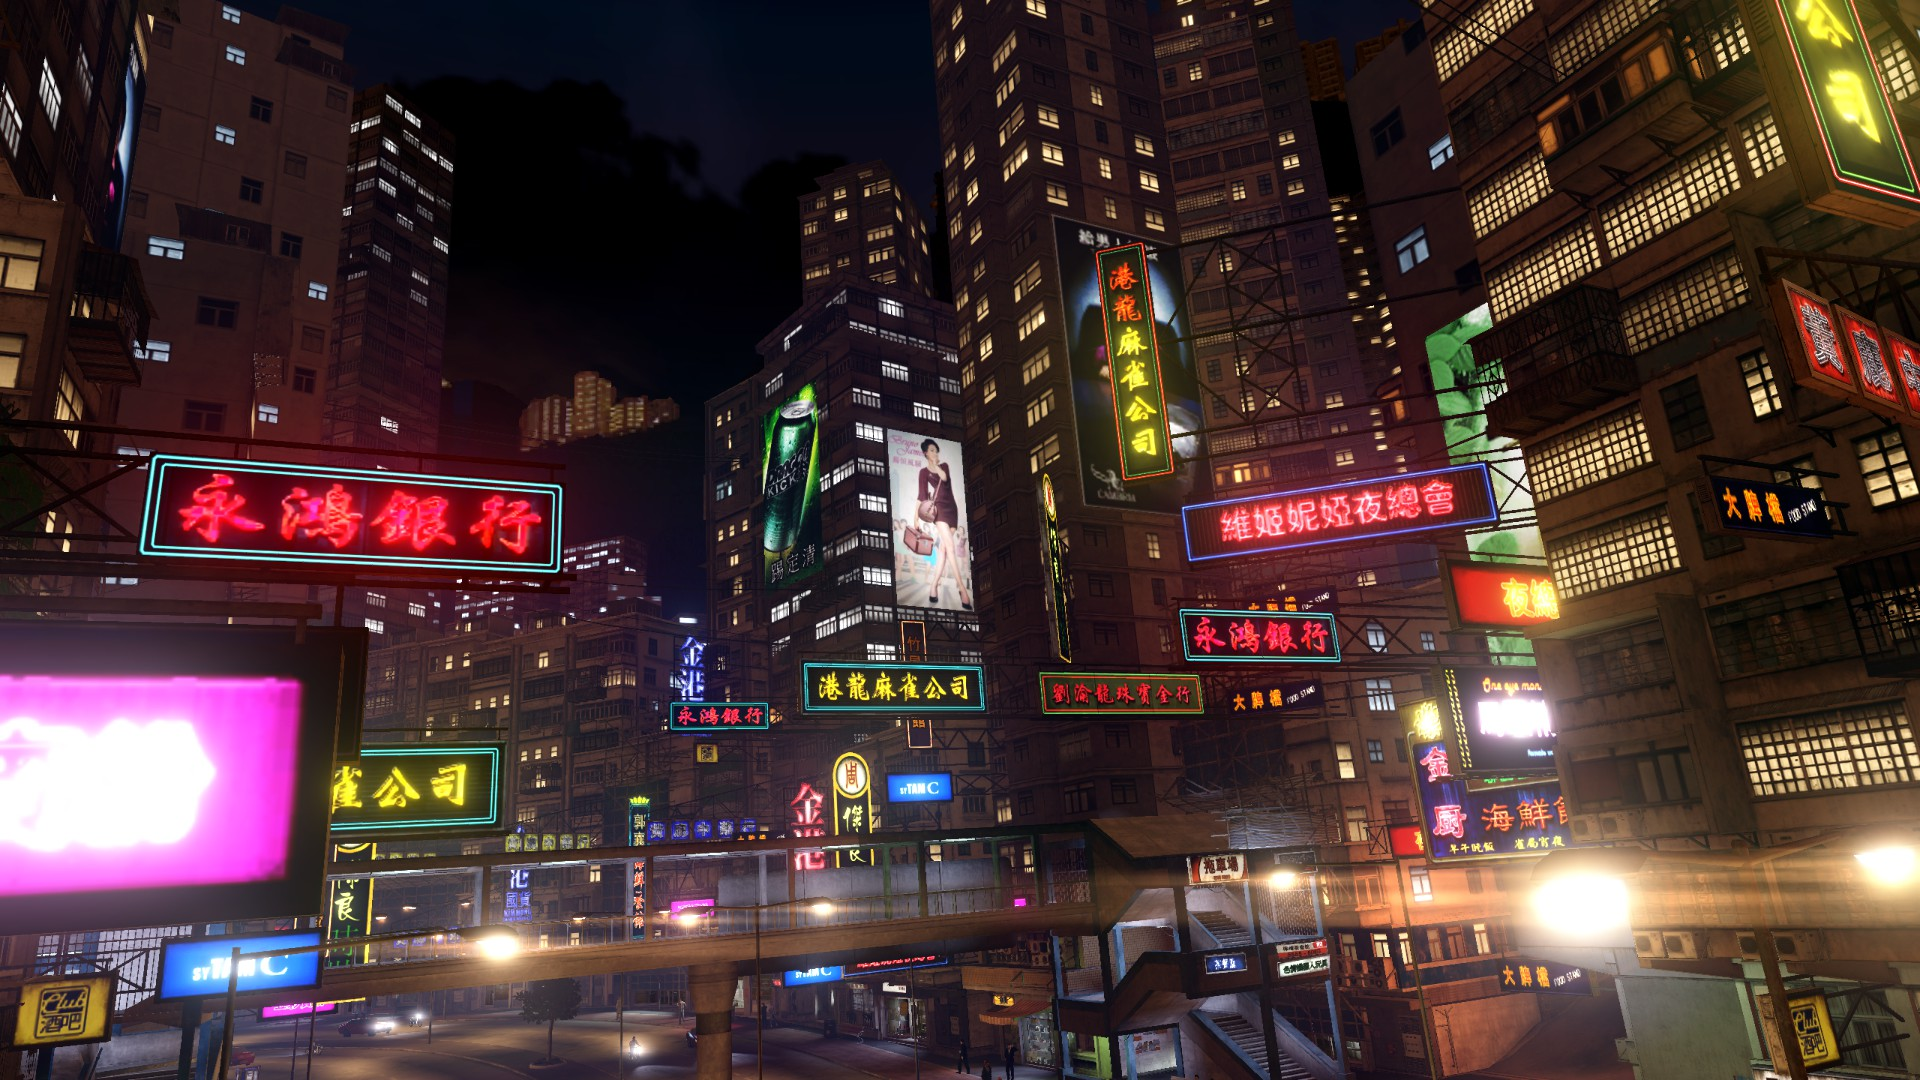 Weaving through the streets of Hong Kong with Sleeping Dogs' designer